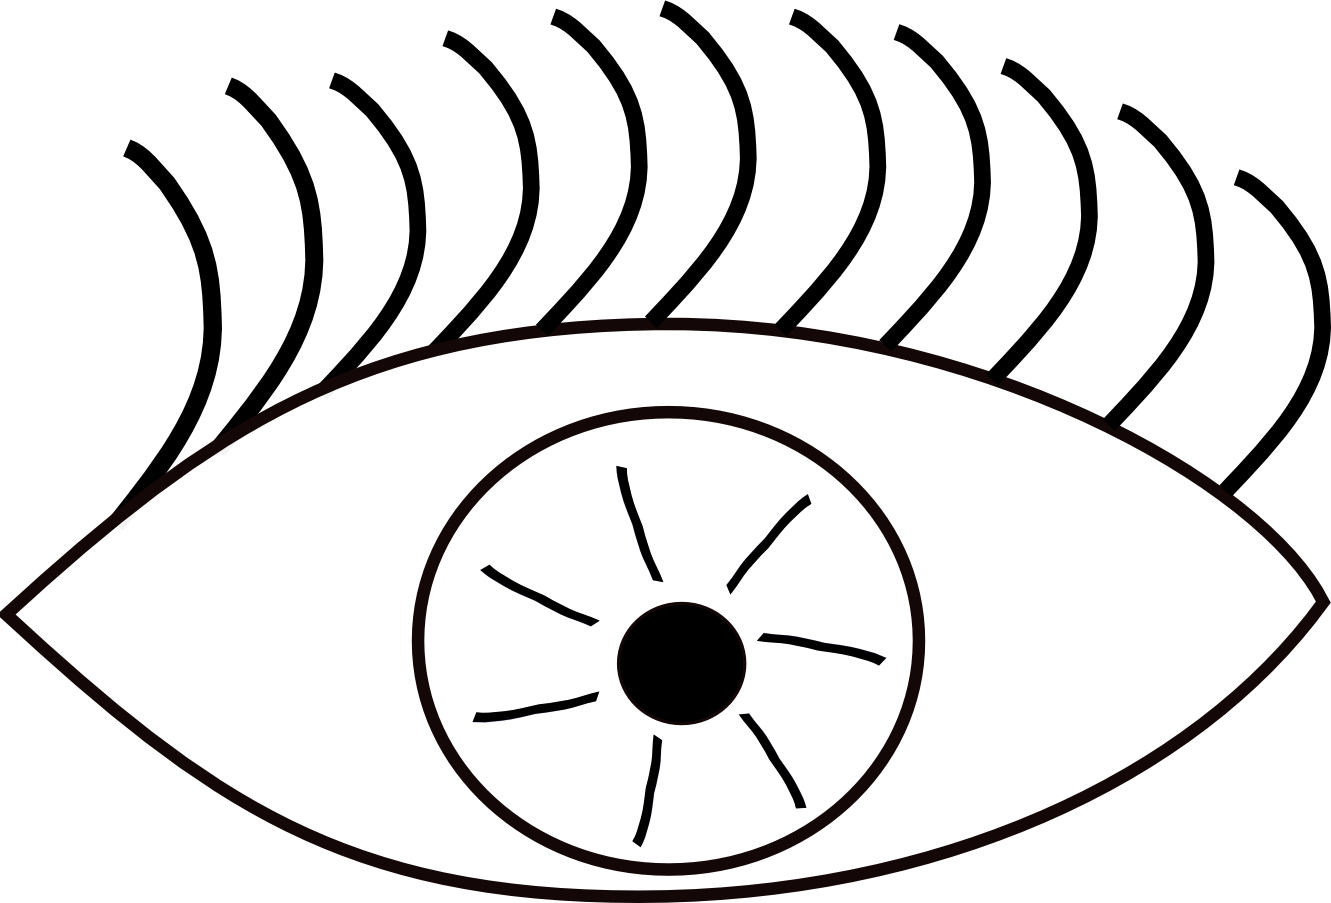 Line Art Eye : Eye clip art black and white clipart best